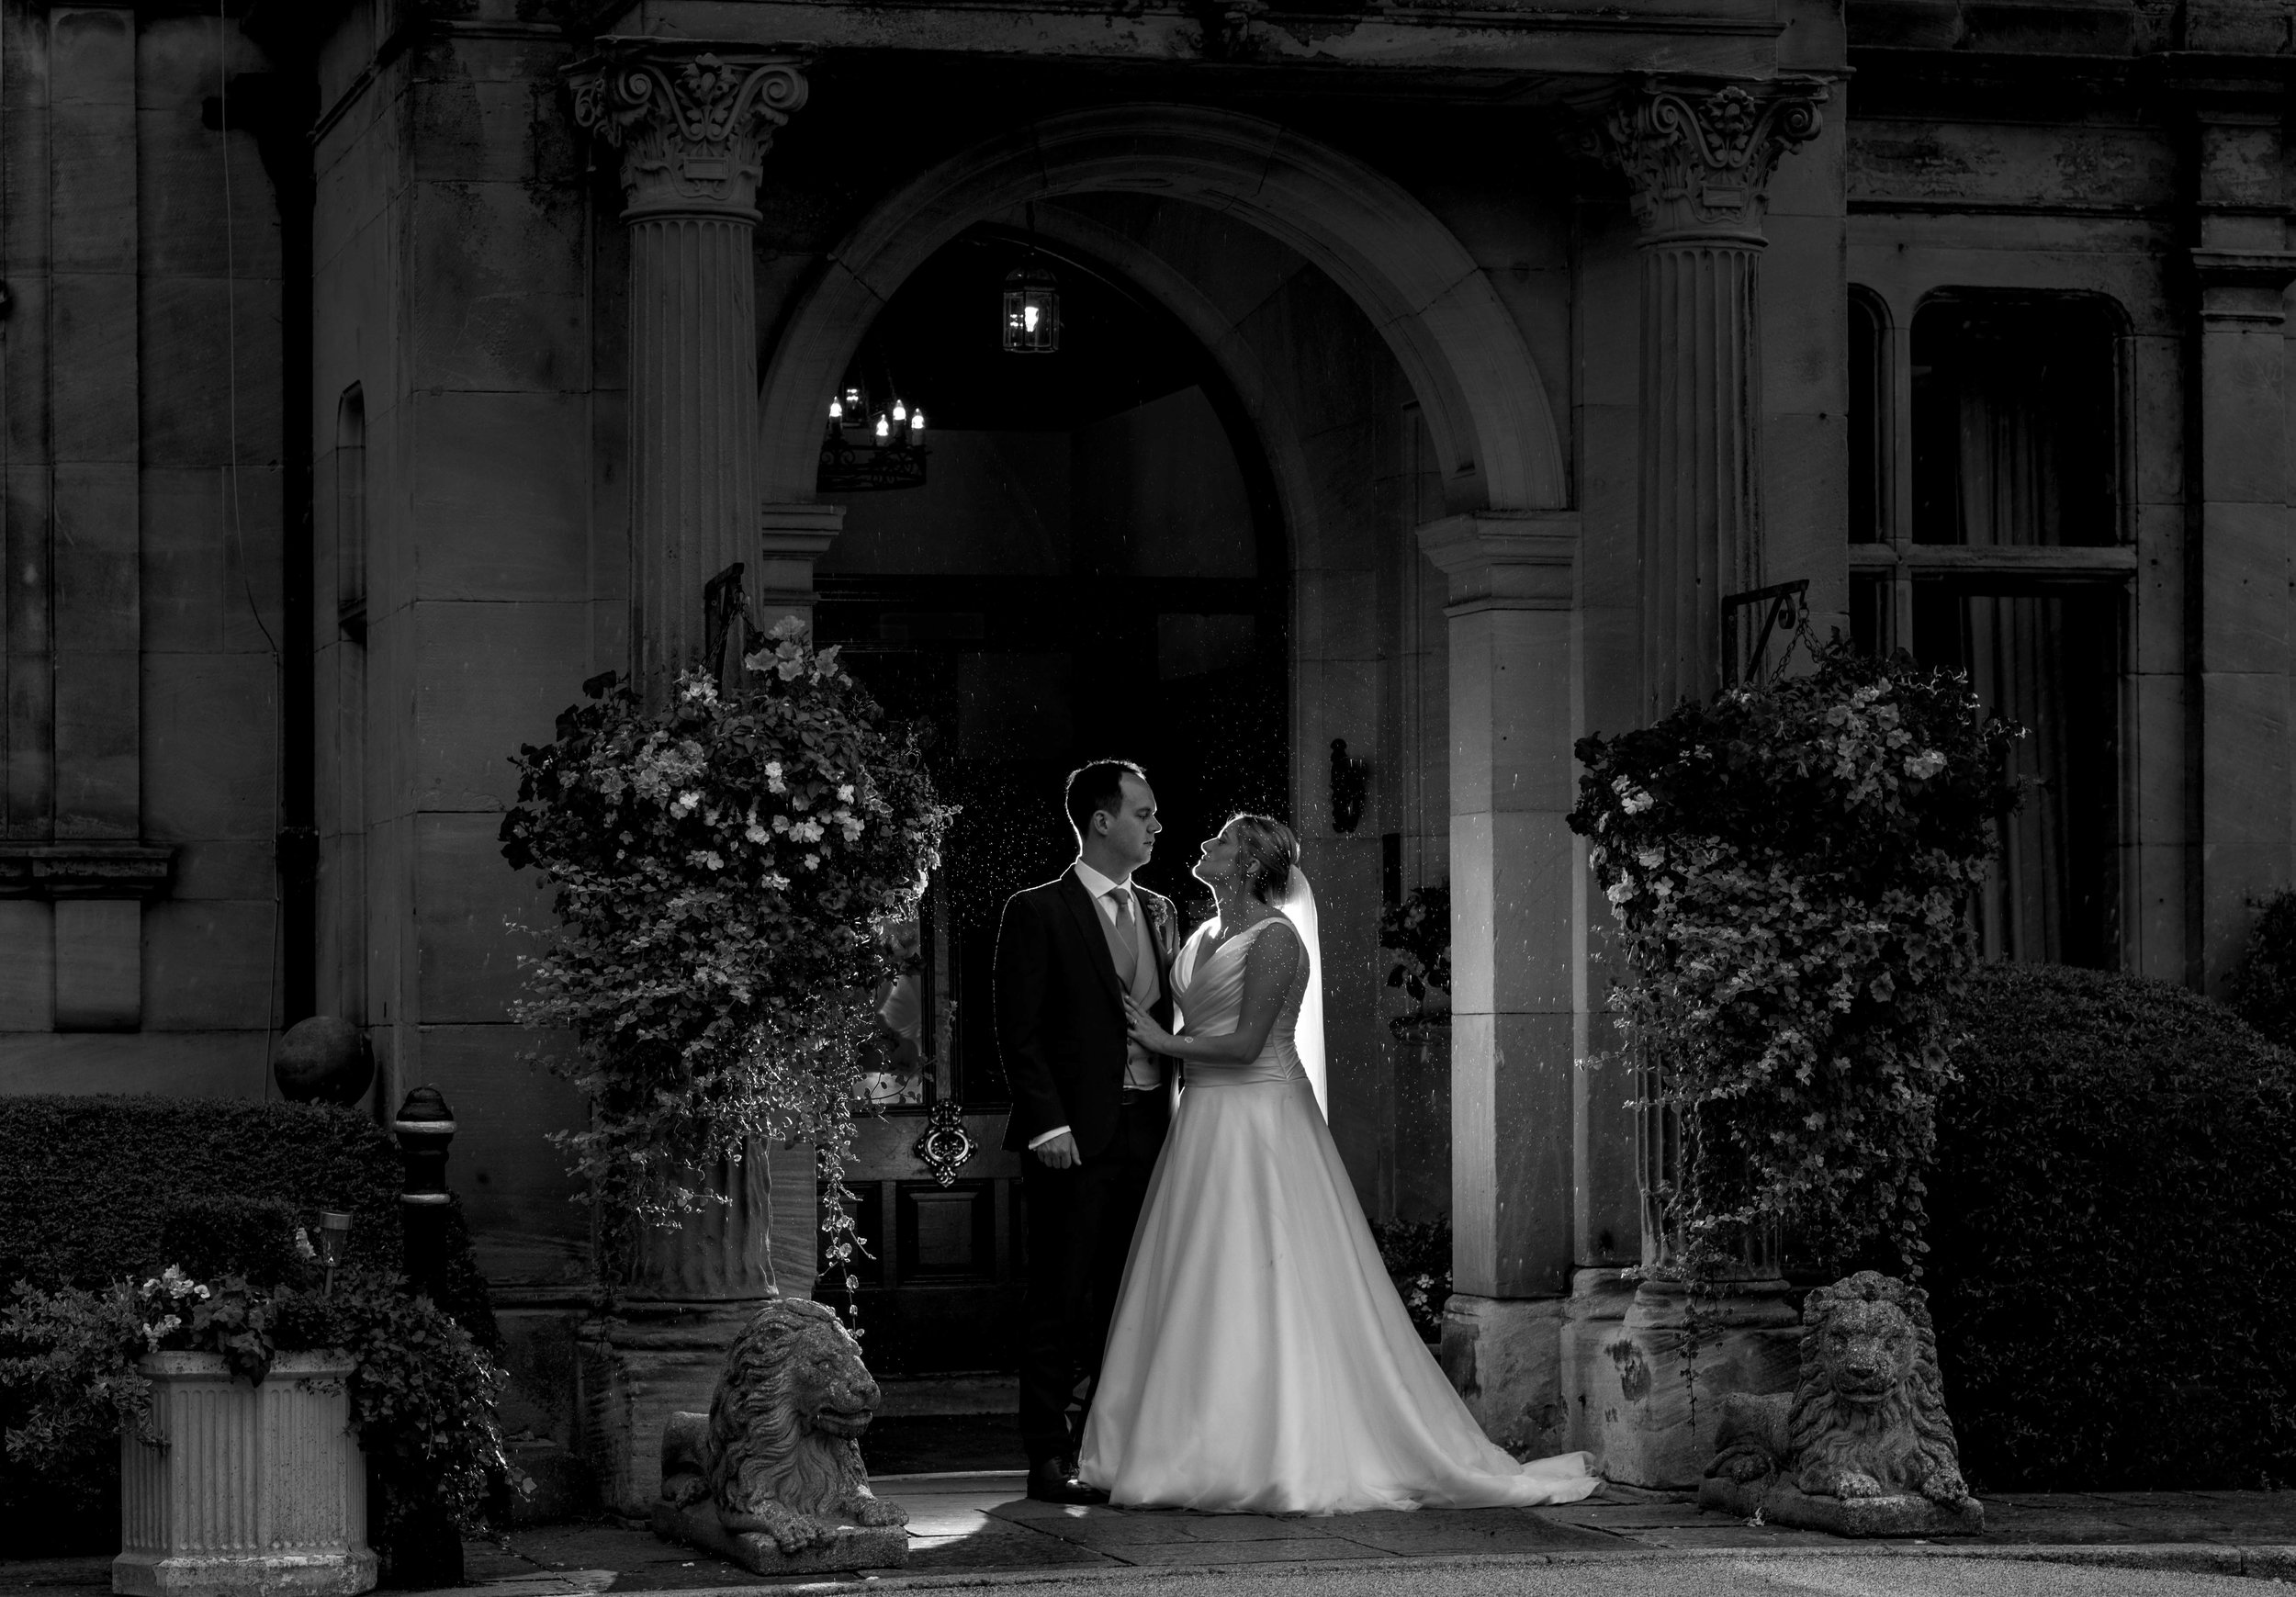 The bride and groom in the entrance to rookery hall